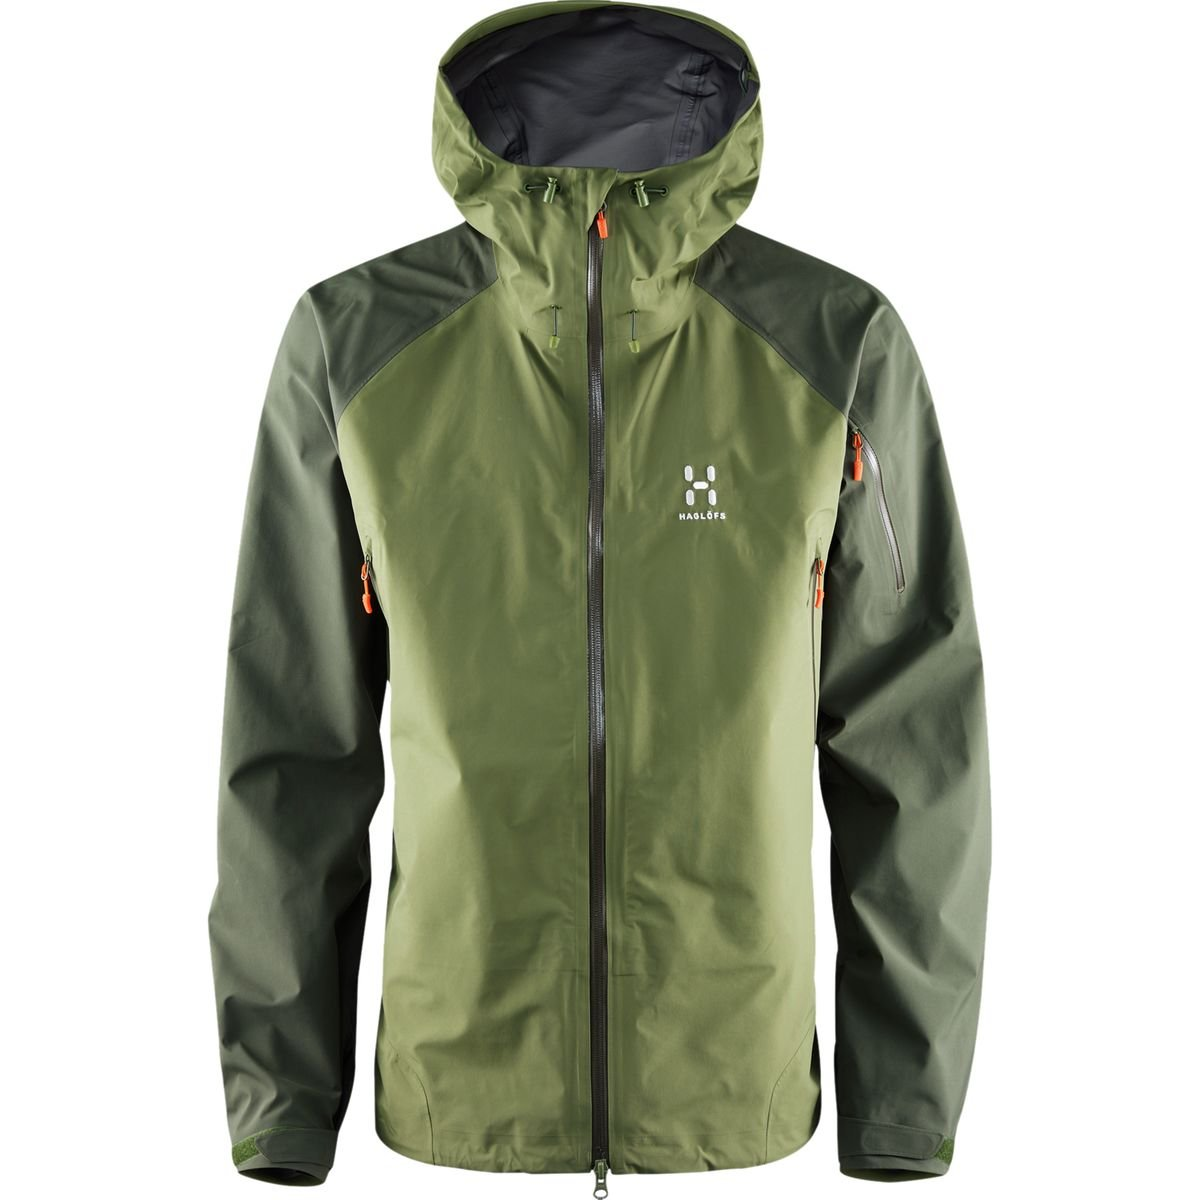 (ホグロフス)HAGLOFS ROC SPIRIT JACKET MEN 603474 [メンズ] B01L0QWMN0 EU M-(日本サイズL相当)|JUNIPER/NORI GREEN JUNIPER/NORI GREEN EU M-(日本サイズL相当)